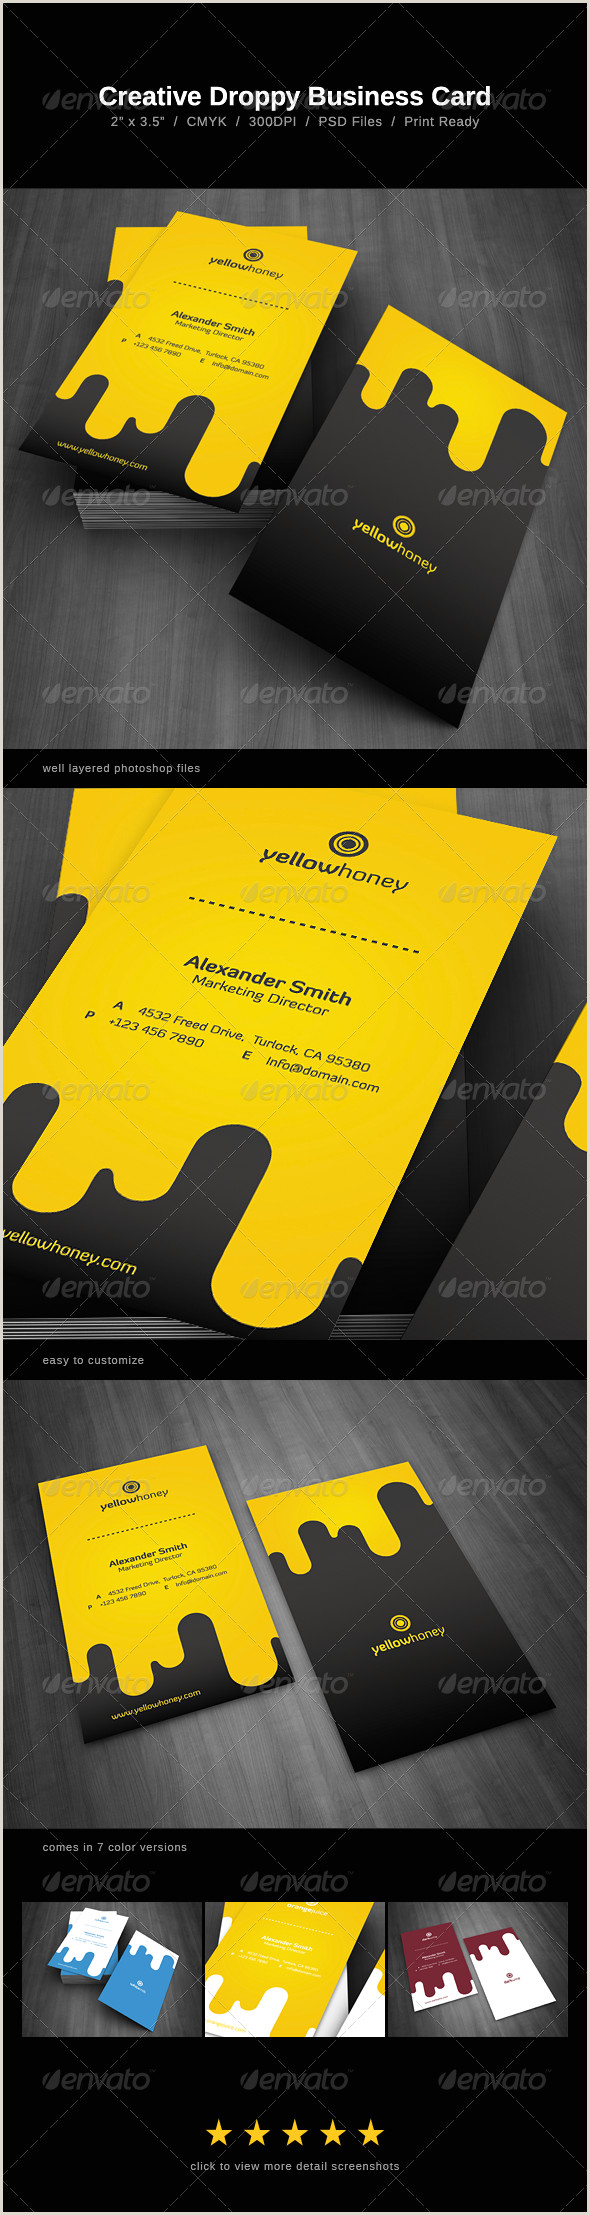 Buisness Card Designs Pin On Flyer Template Layout